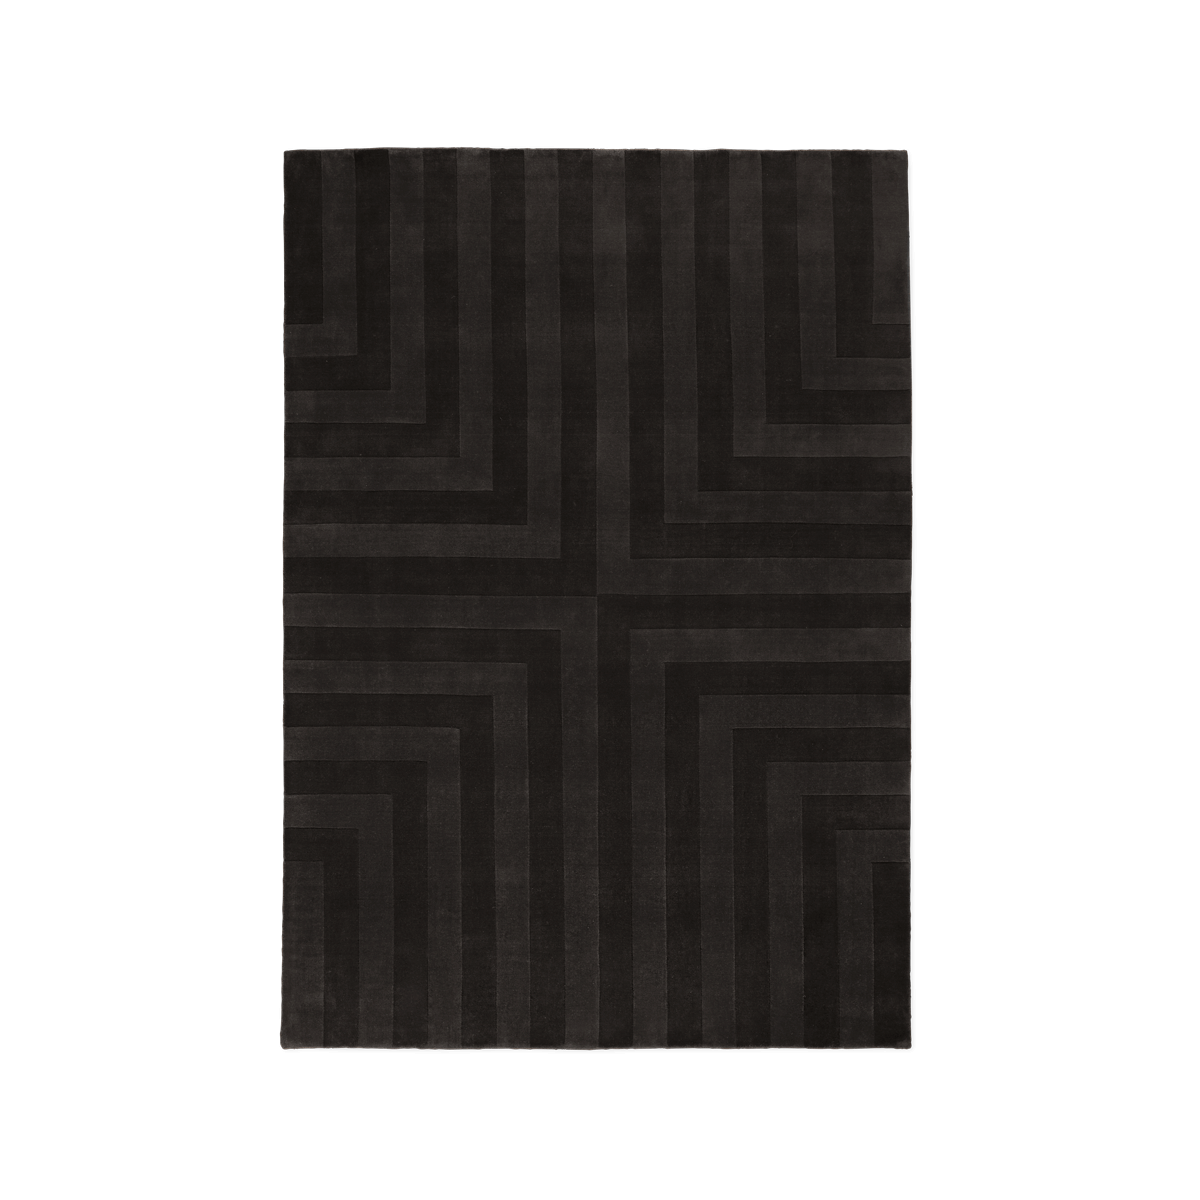 Product image of the plush rug Lux 3 in the color Coffee. The pile of the rug is cut in different heights creating a pattern across the rug.